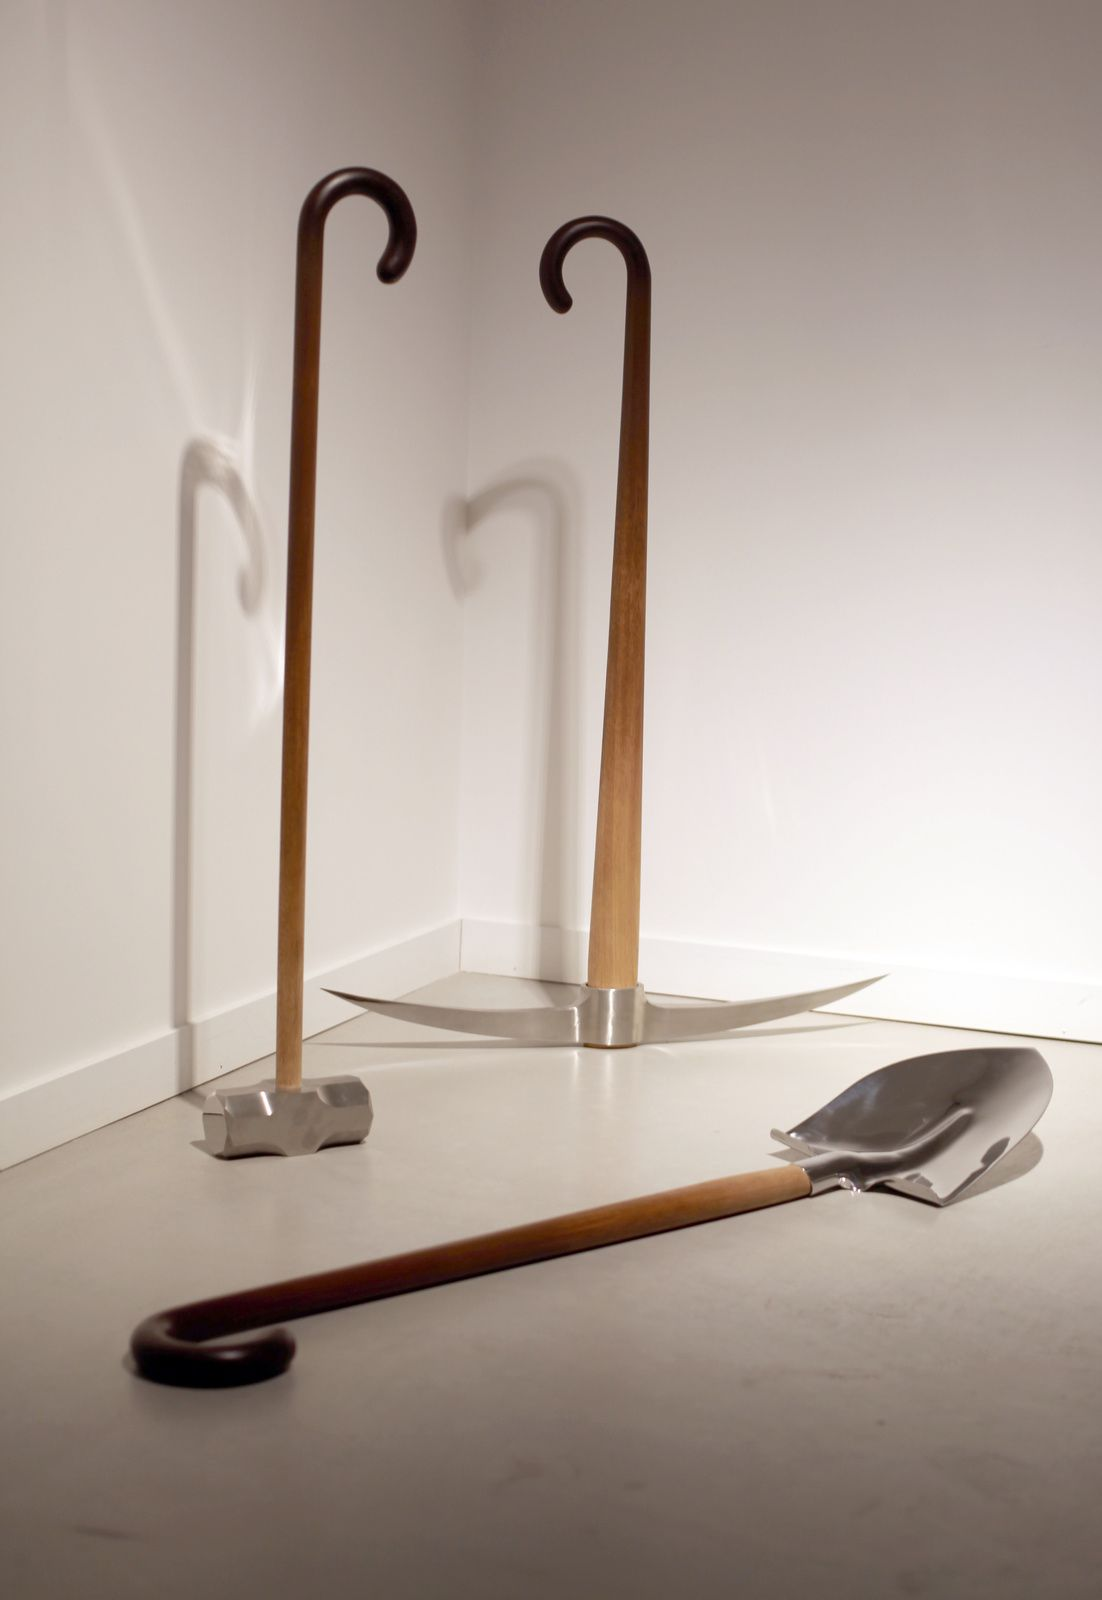 """Untitled (Shovel, Pickaxe, Mallet)"", 2017 de MYEONGBEOM KIM - Courtesy Galerie Paris-Beijing © Photo Éric Simon"